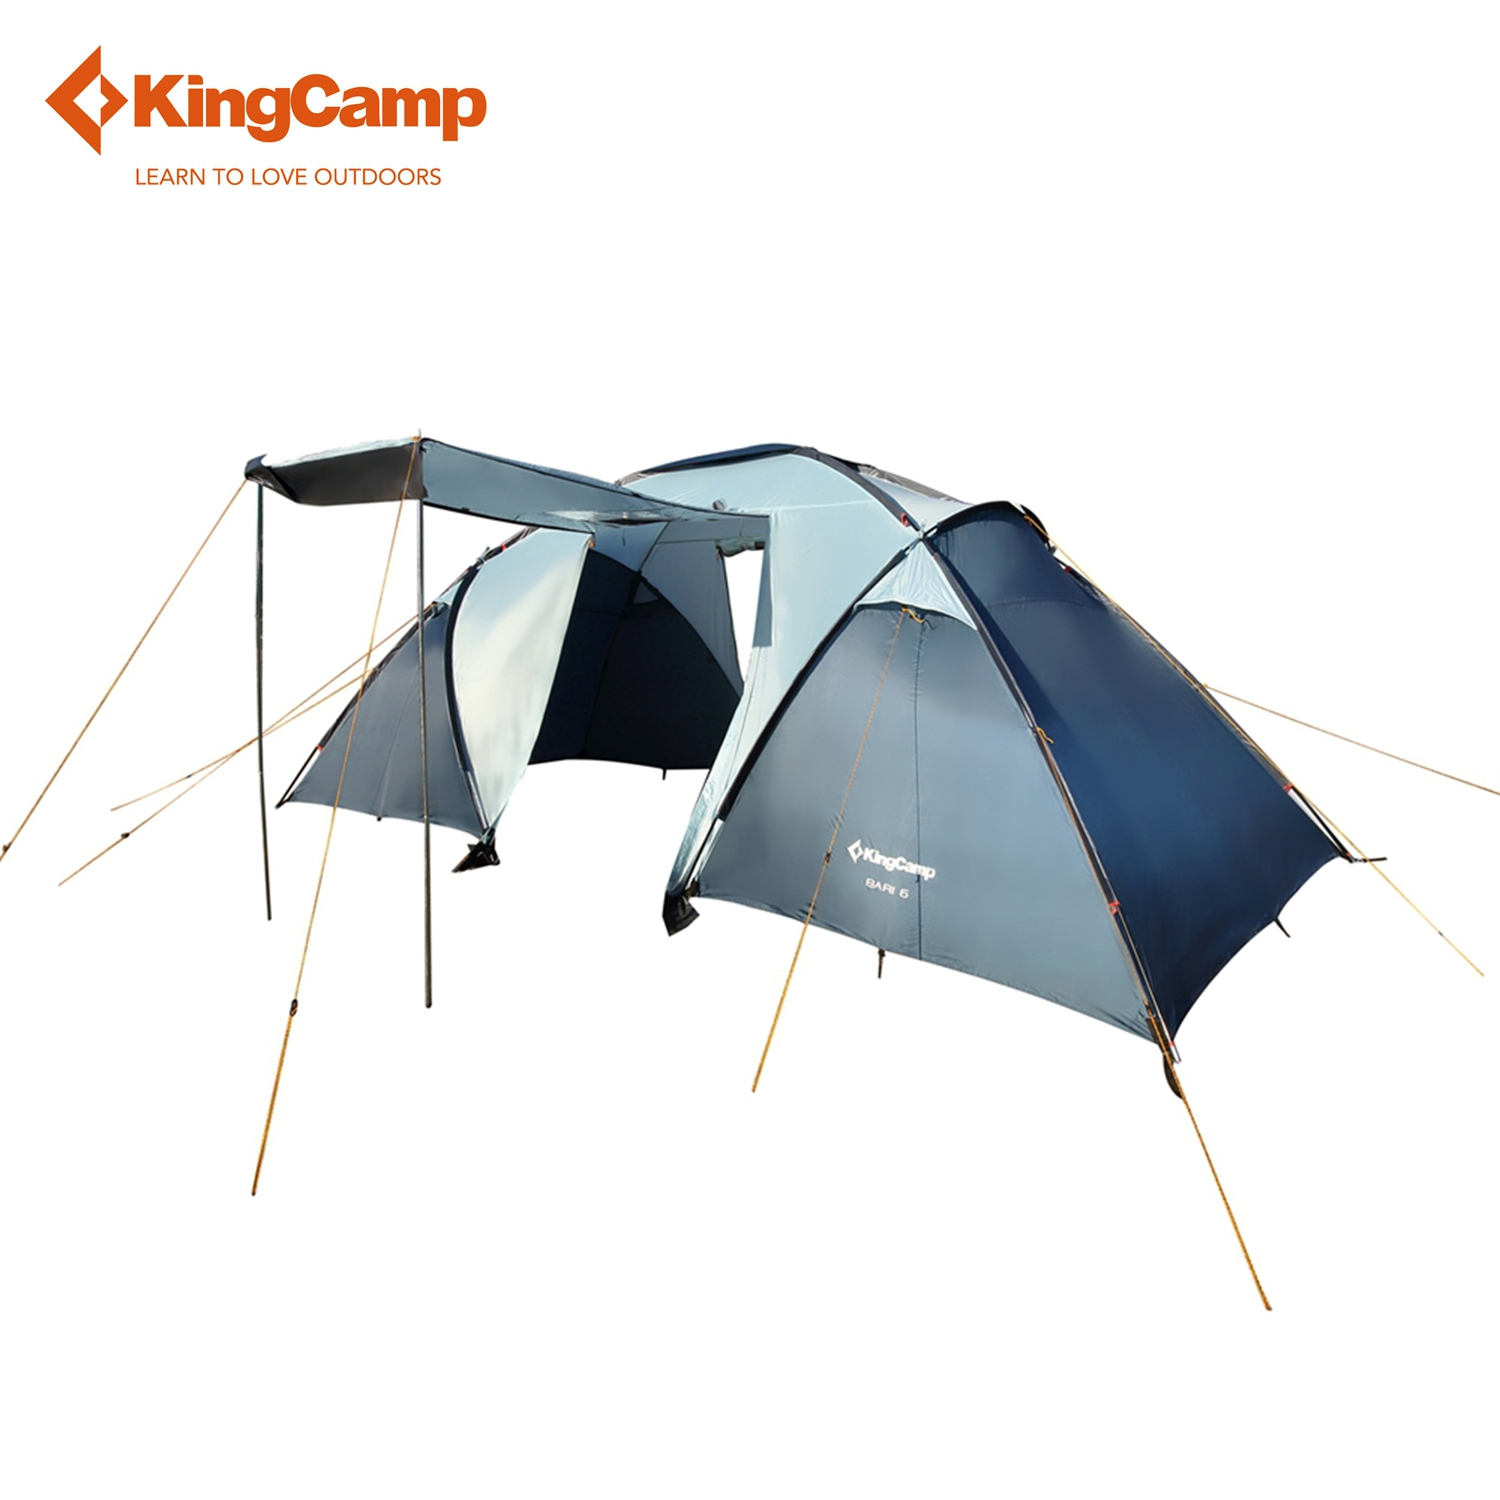 KingCamp Waterproof Tent 6-Person 2-Room 3-Season Outdoor Tent for Family Camping Portable Outdoor Hiking Trekking Tent kingcamp camping tent waterproof brand windproof bari fire resistant 4 person 3 season outdoor tent for family camping